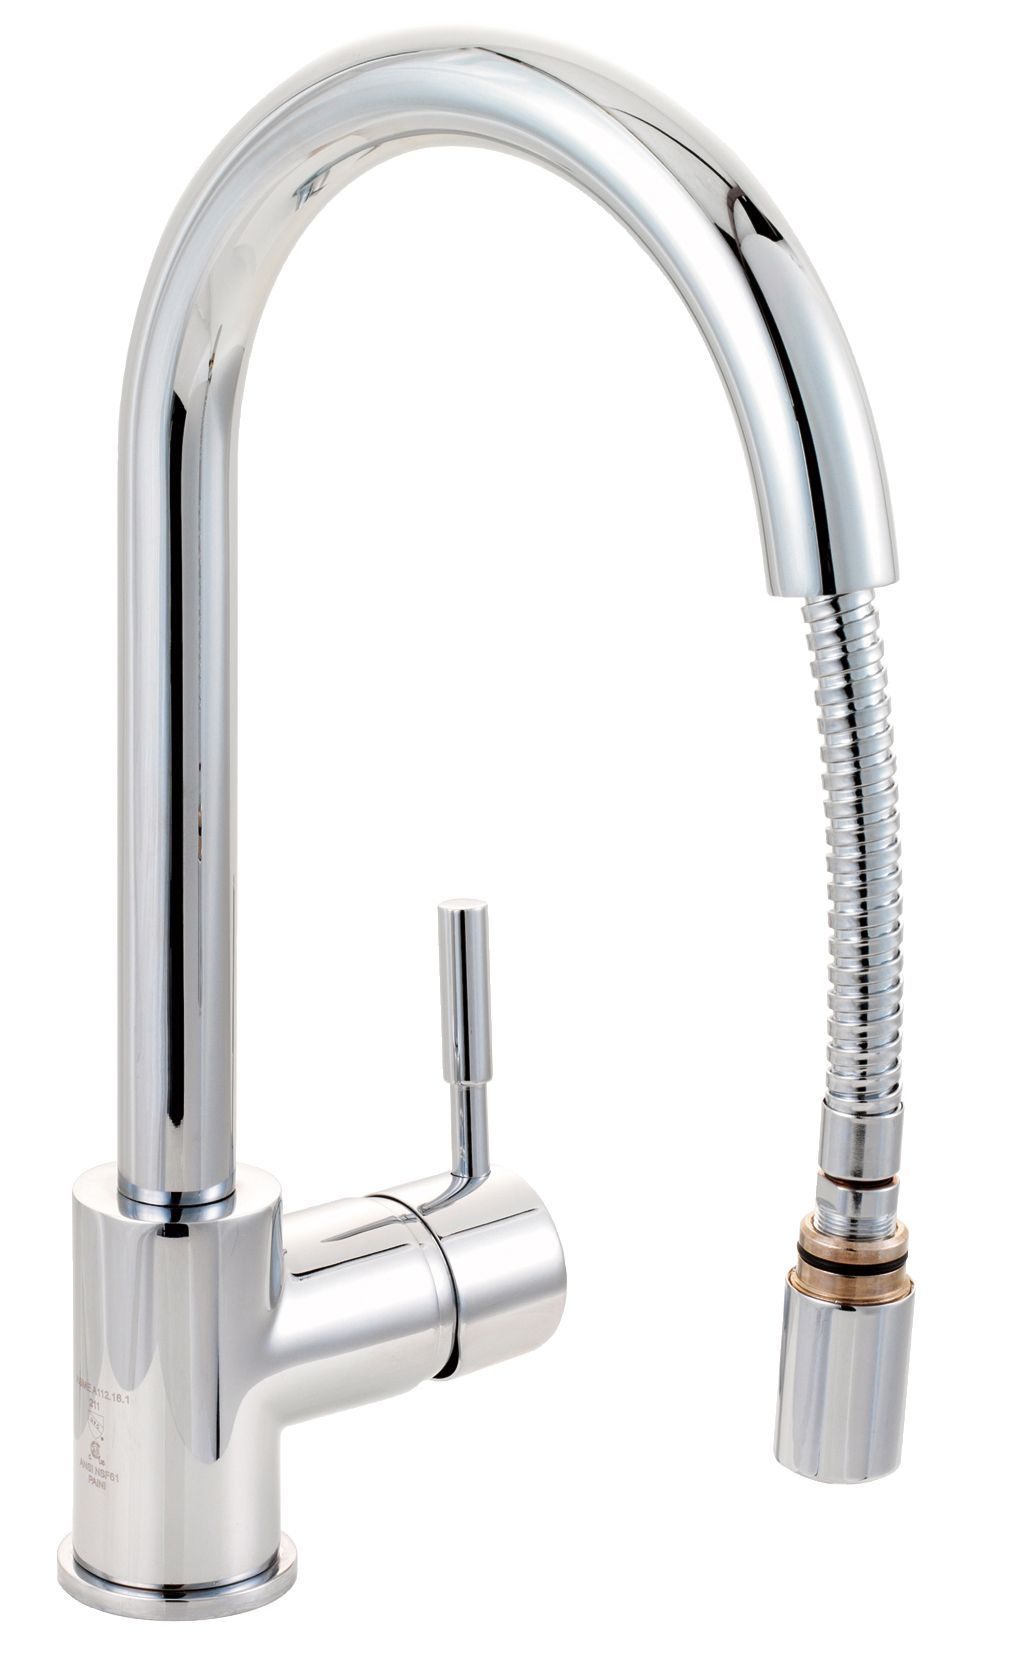 Cooke And Lewis Kitchen Sinks Cooke lewis saru chrome effect pull out tap departments diy at cooke lewis saru chrome effect pull out tap departments diy at bq workwithnaturefo